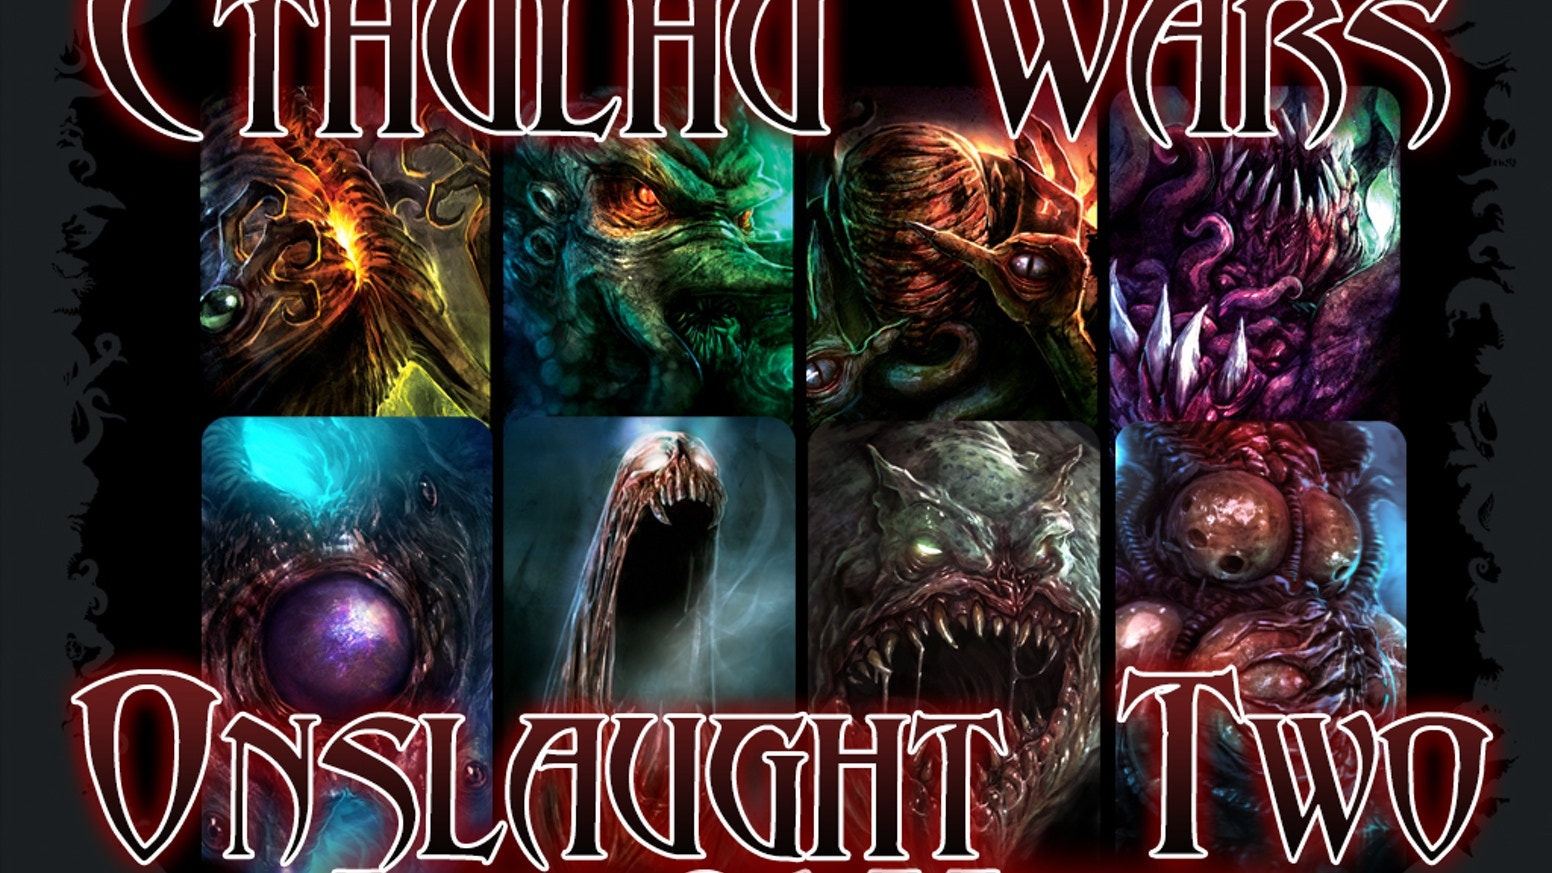 Cthulhu Wars is the premiere horror strategy game with high quality miniatures and great competitive gameplay and tactics.